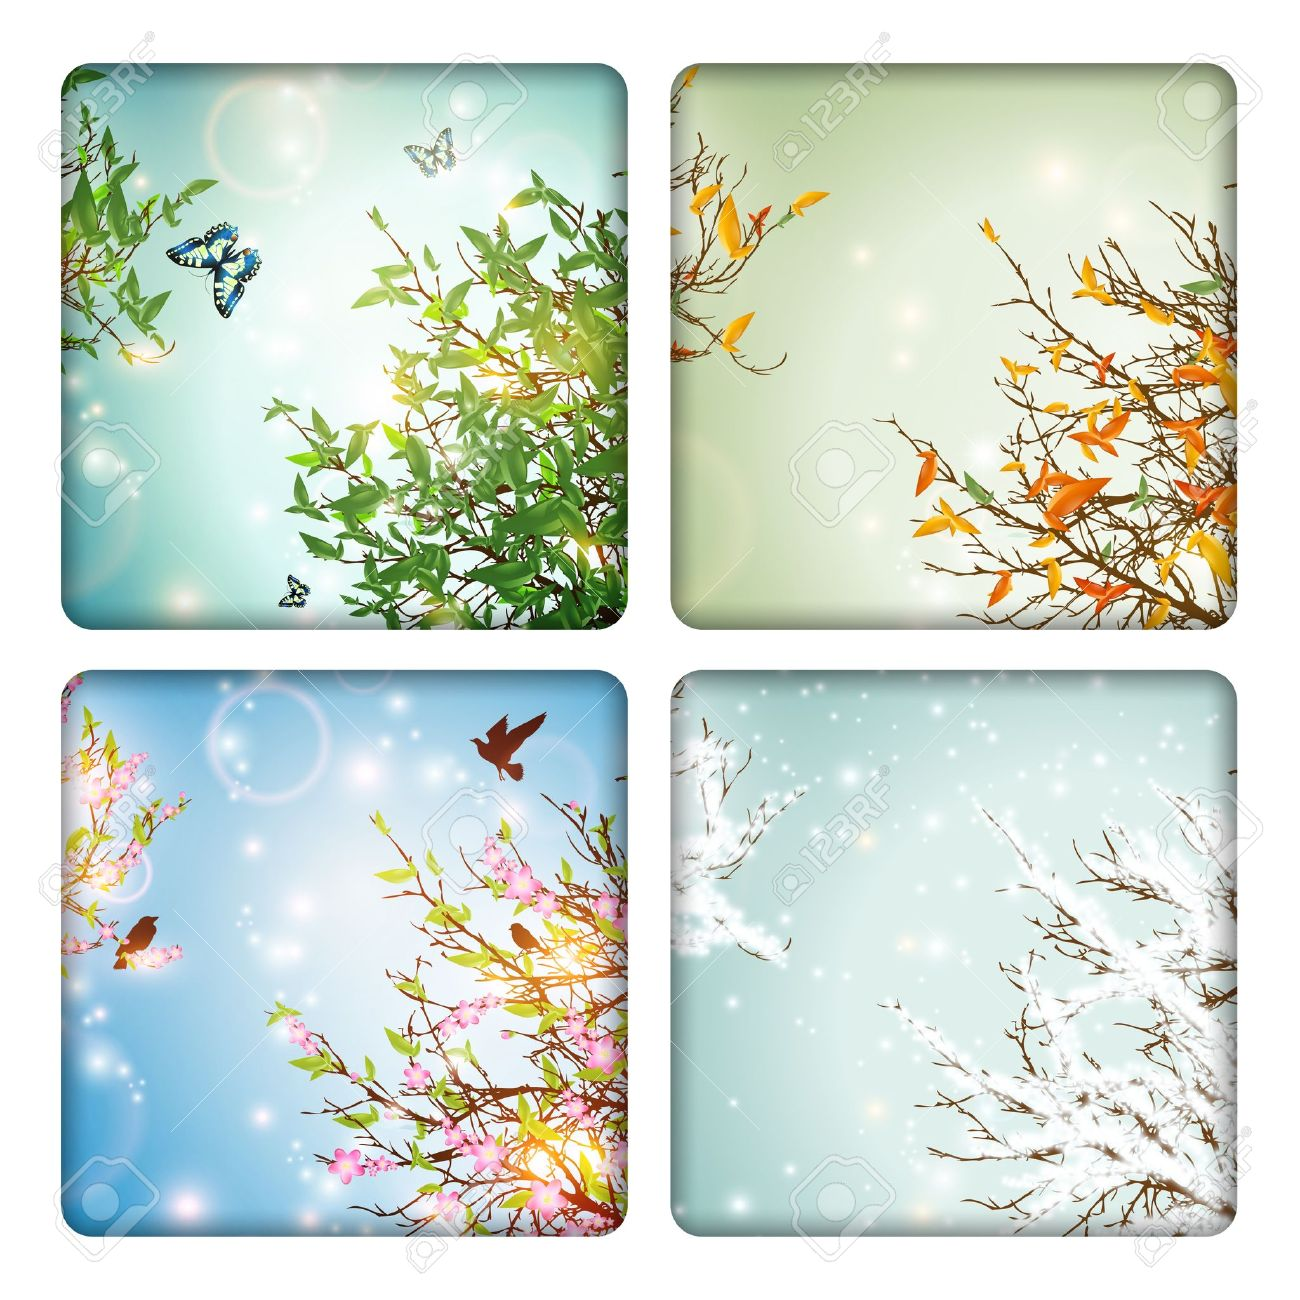 Four Seasons: spring, summer, autumn and winter - 14008342